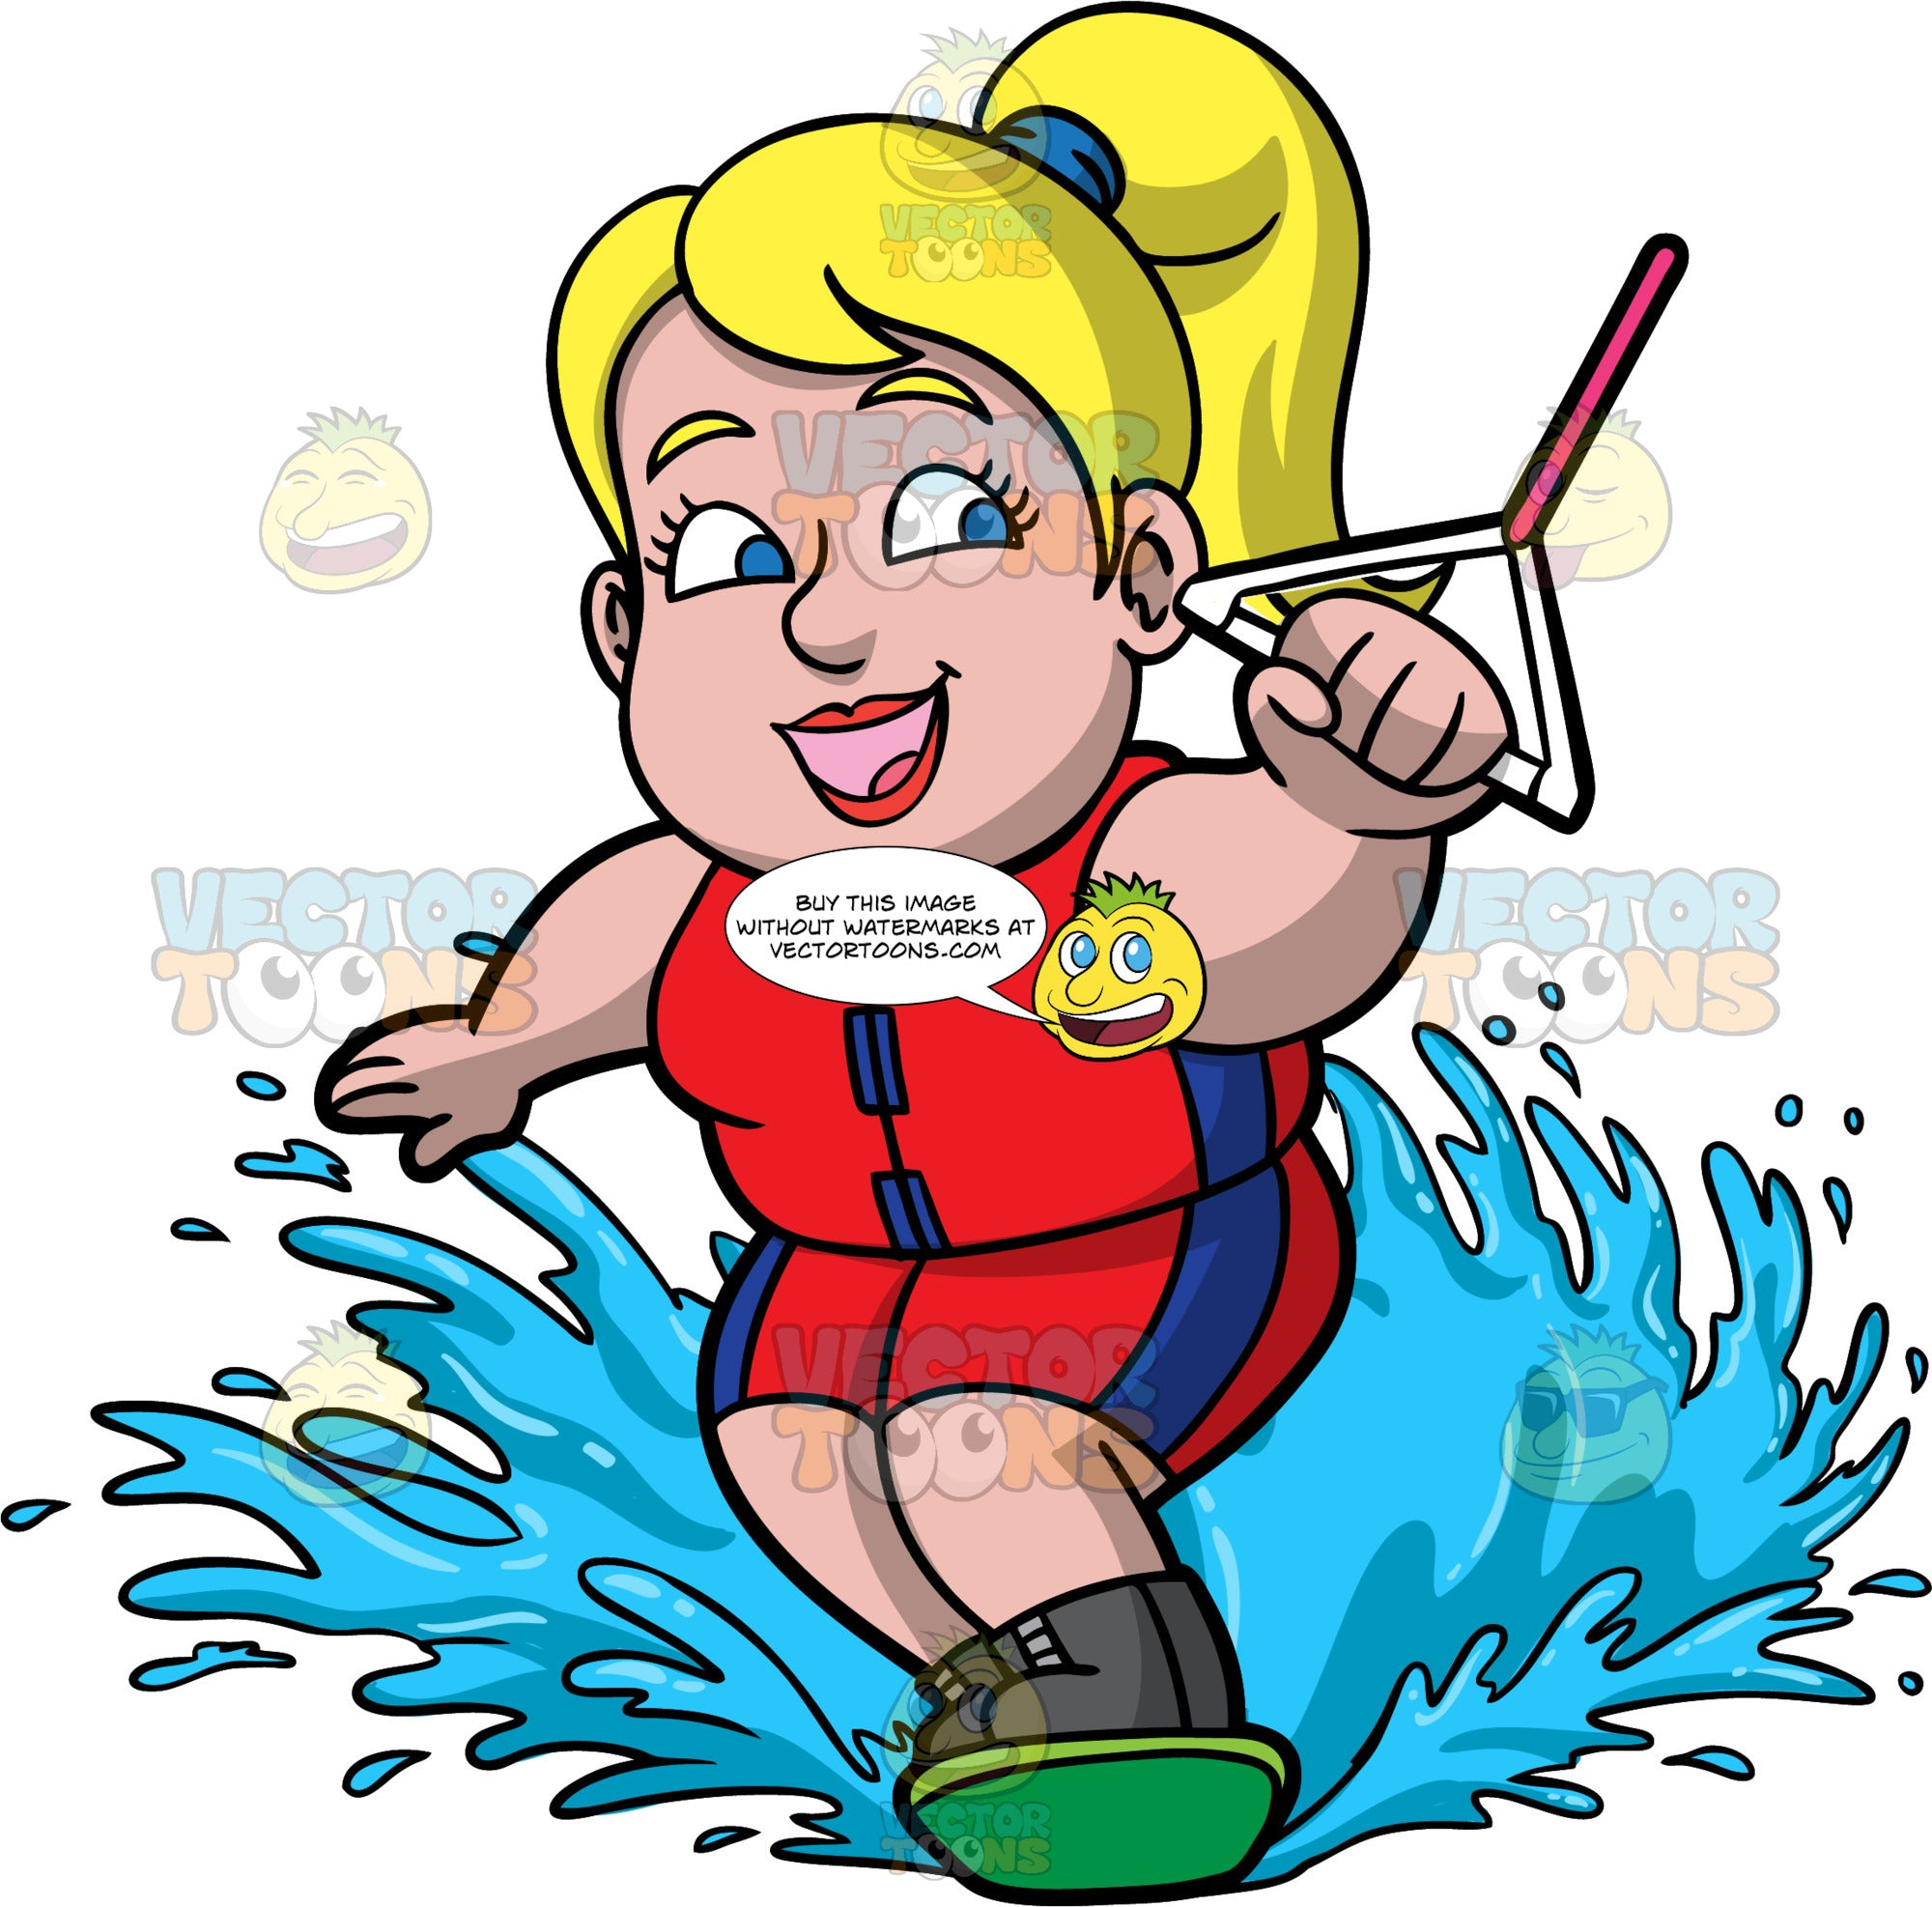 Pat Skiing On One Water Ski. A chubby blonde woman wearing a red and blue wet suit, holding onto a white handle with one hand, as she gets towed behind a boat on one water ski